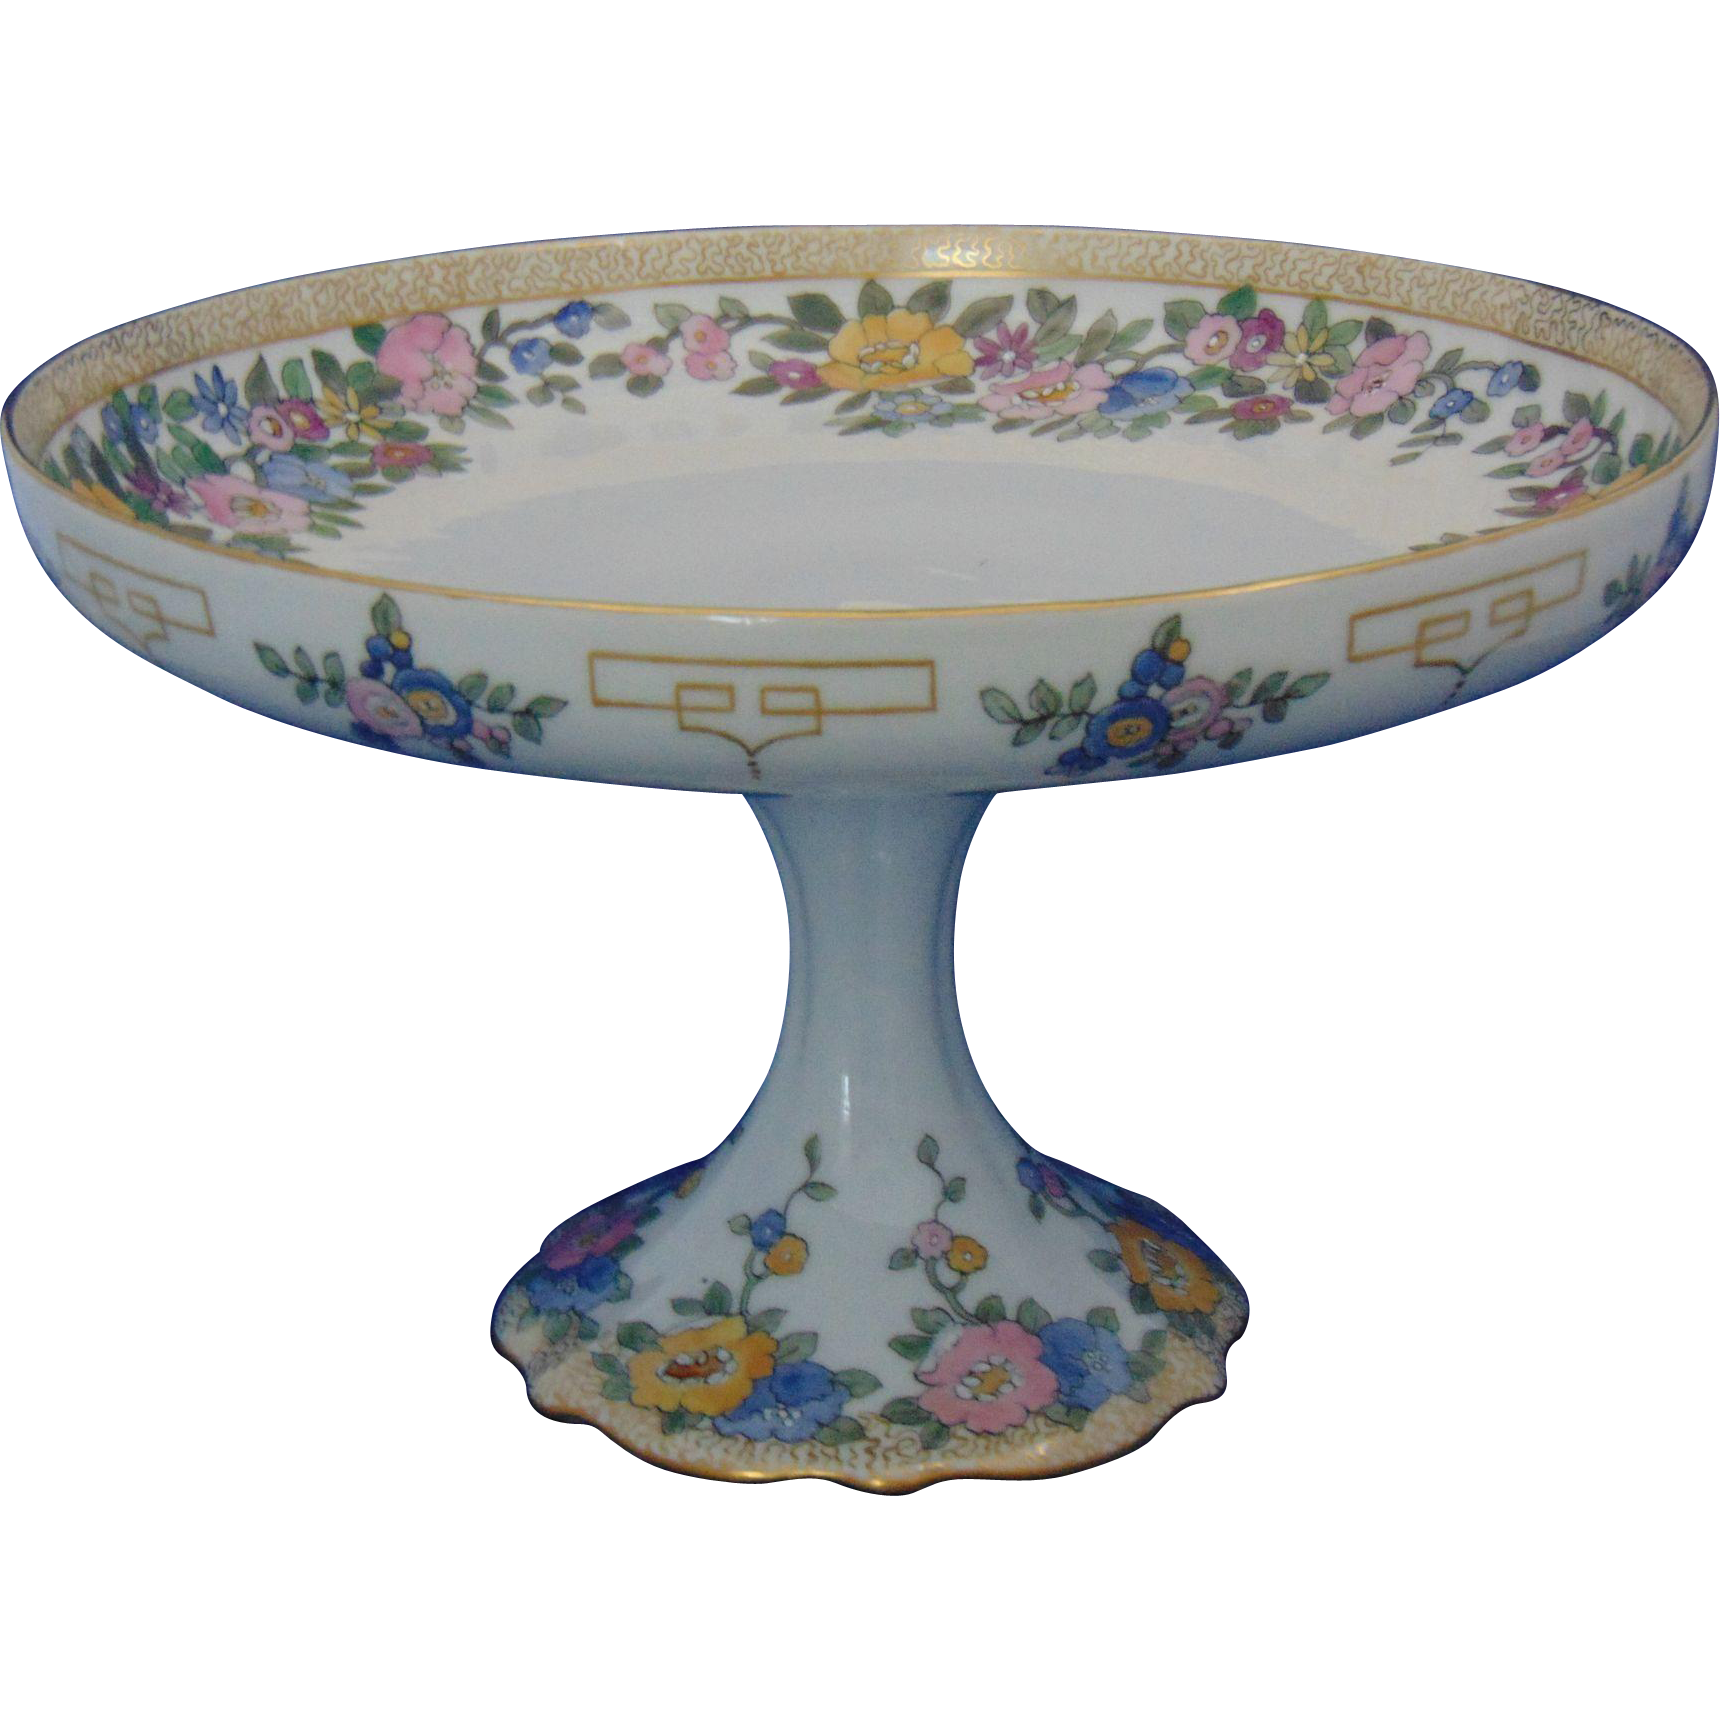 "Bernardaud & Co. (B&Co.) Limoges Arts & Crafts Enameled Floral Motif Pedestal Plate/Compote (Signed ""A. Mutrie""/Dated 1916)"